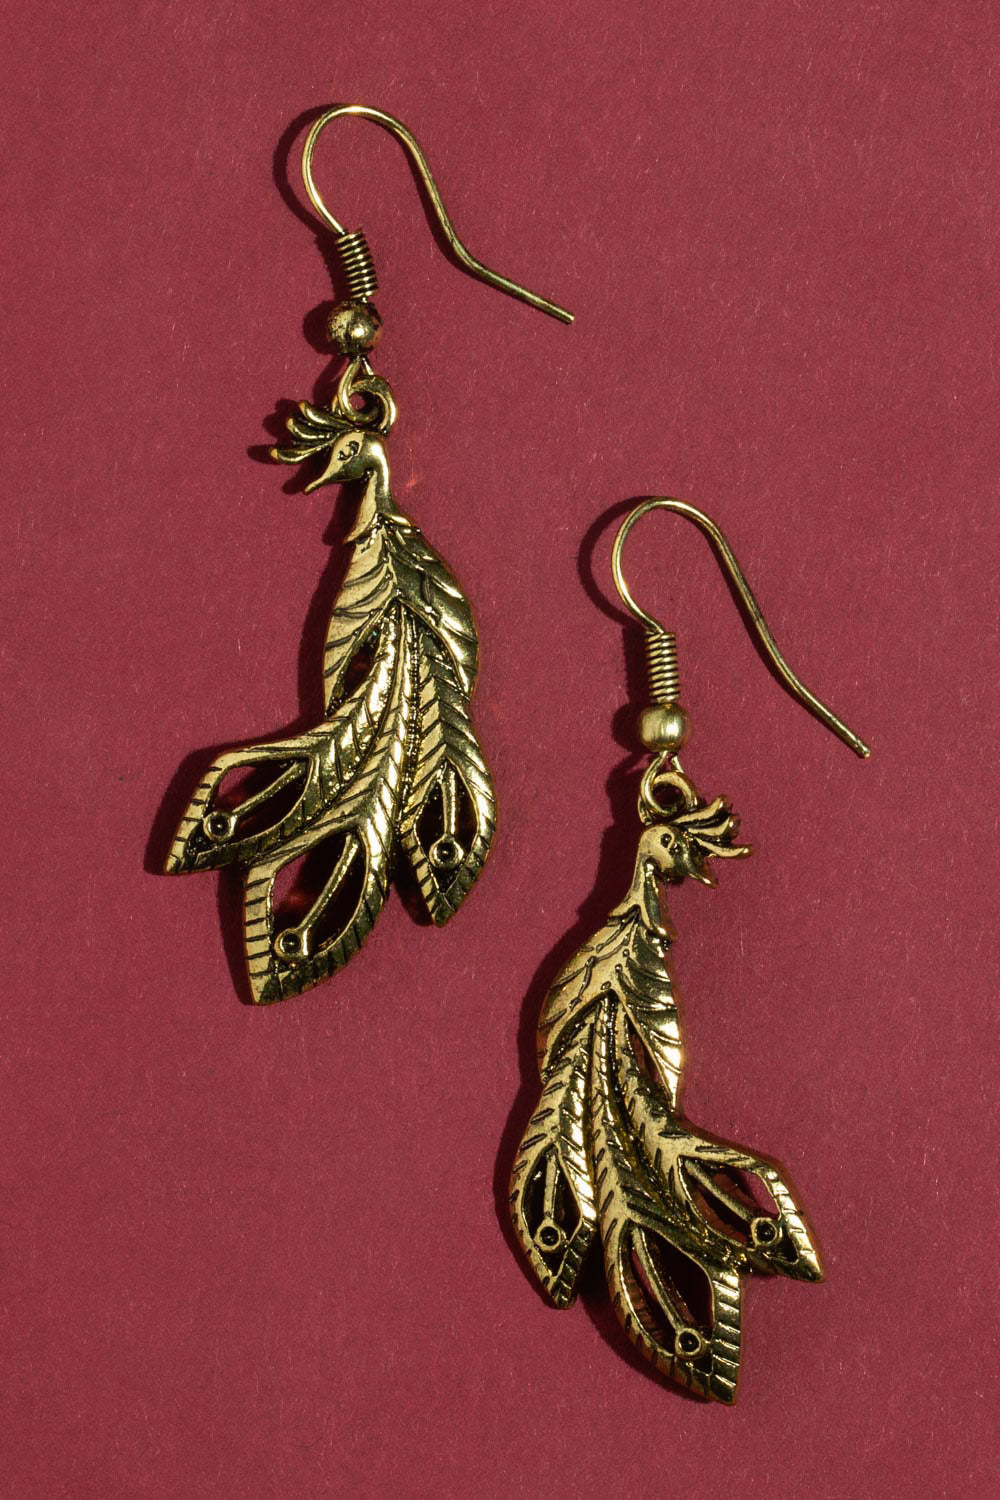 Type 3 Peacock Earrings - Gold